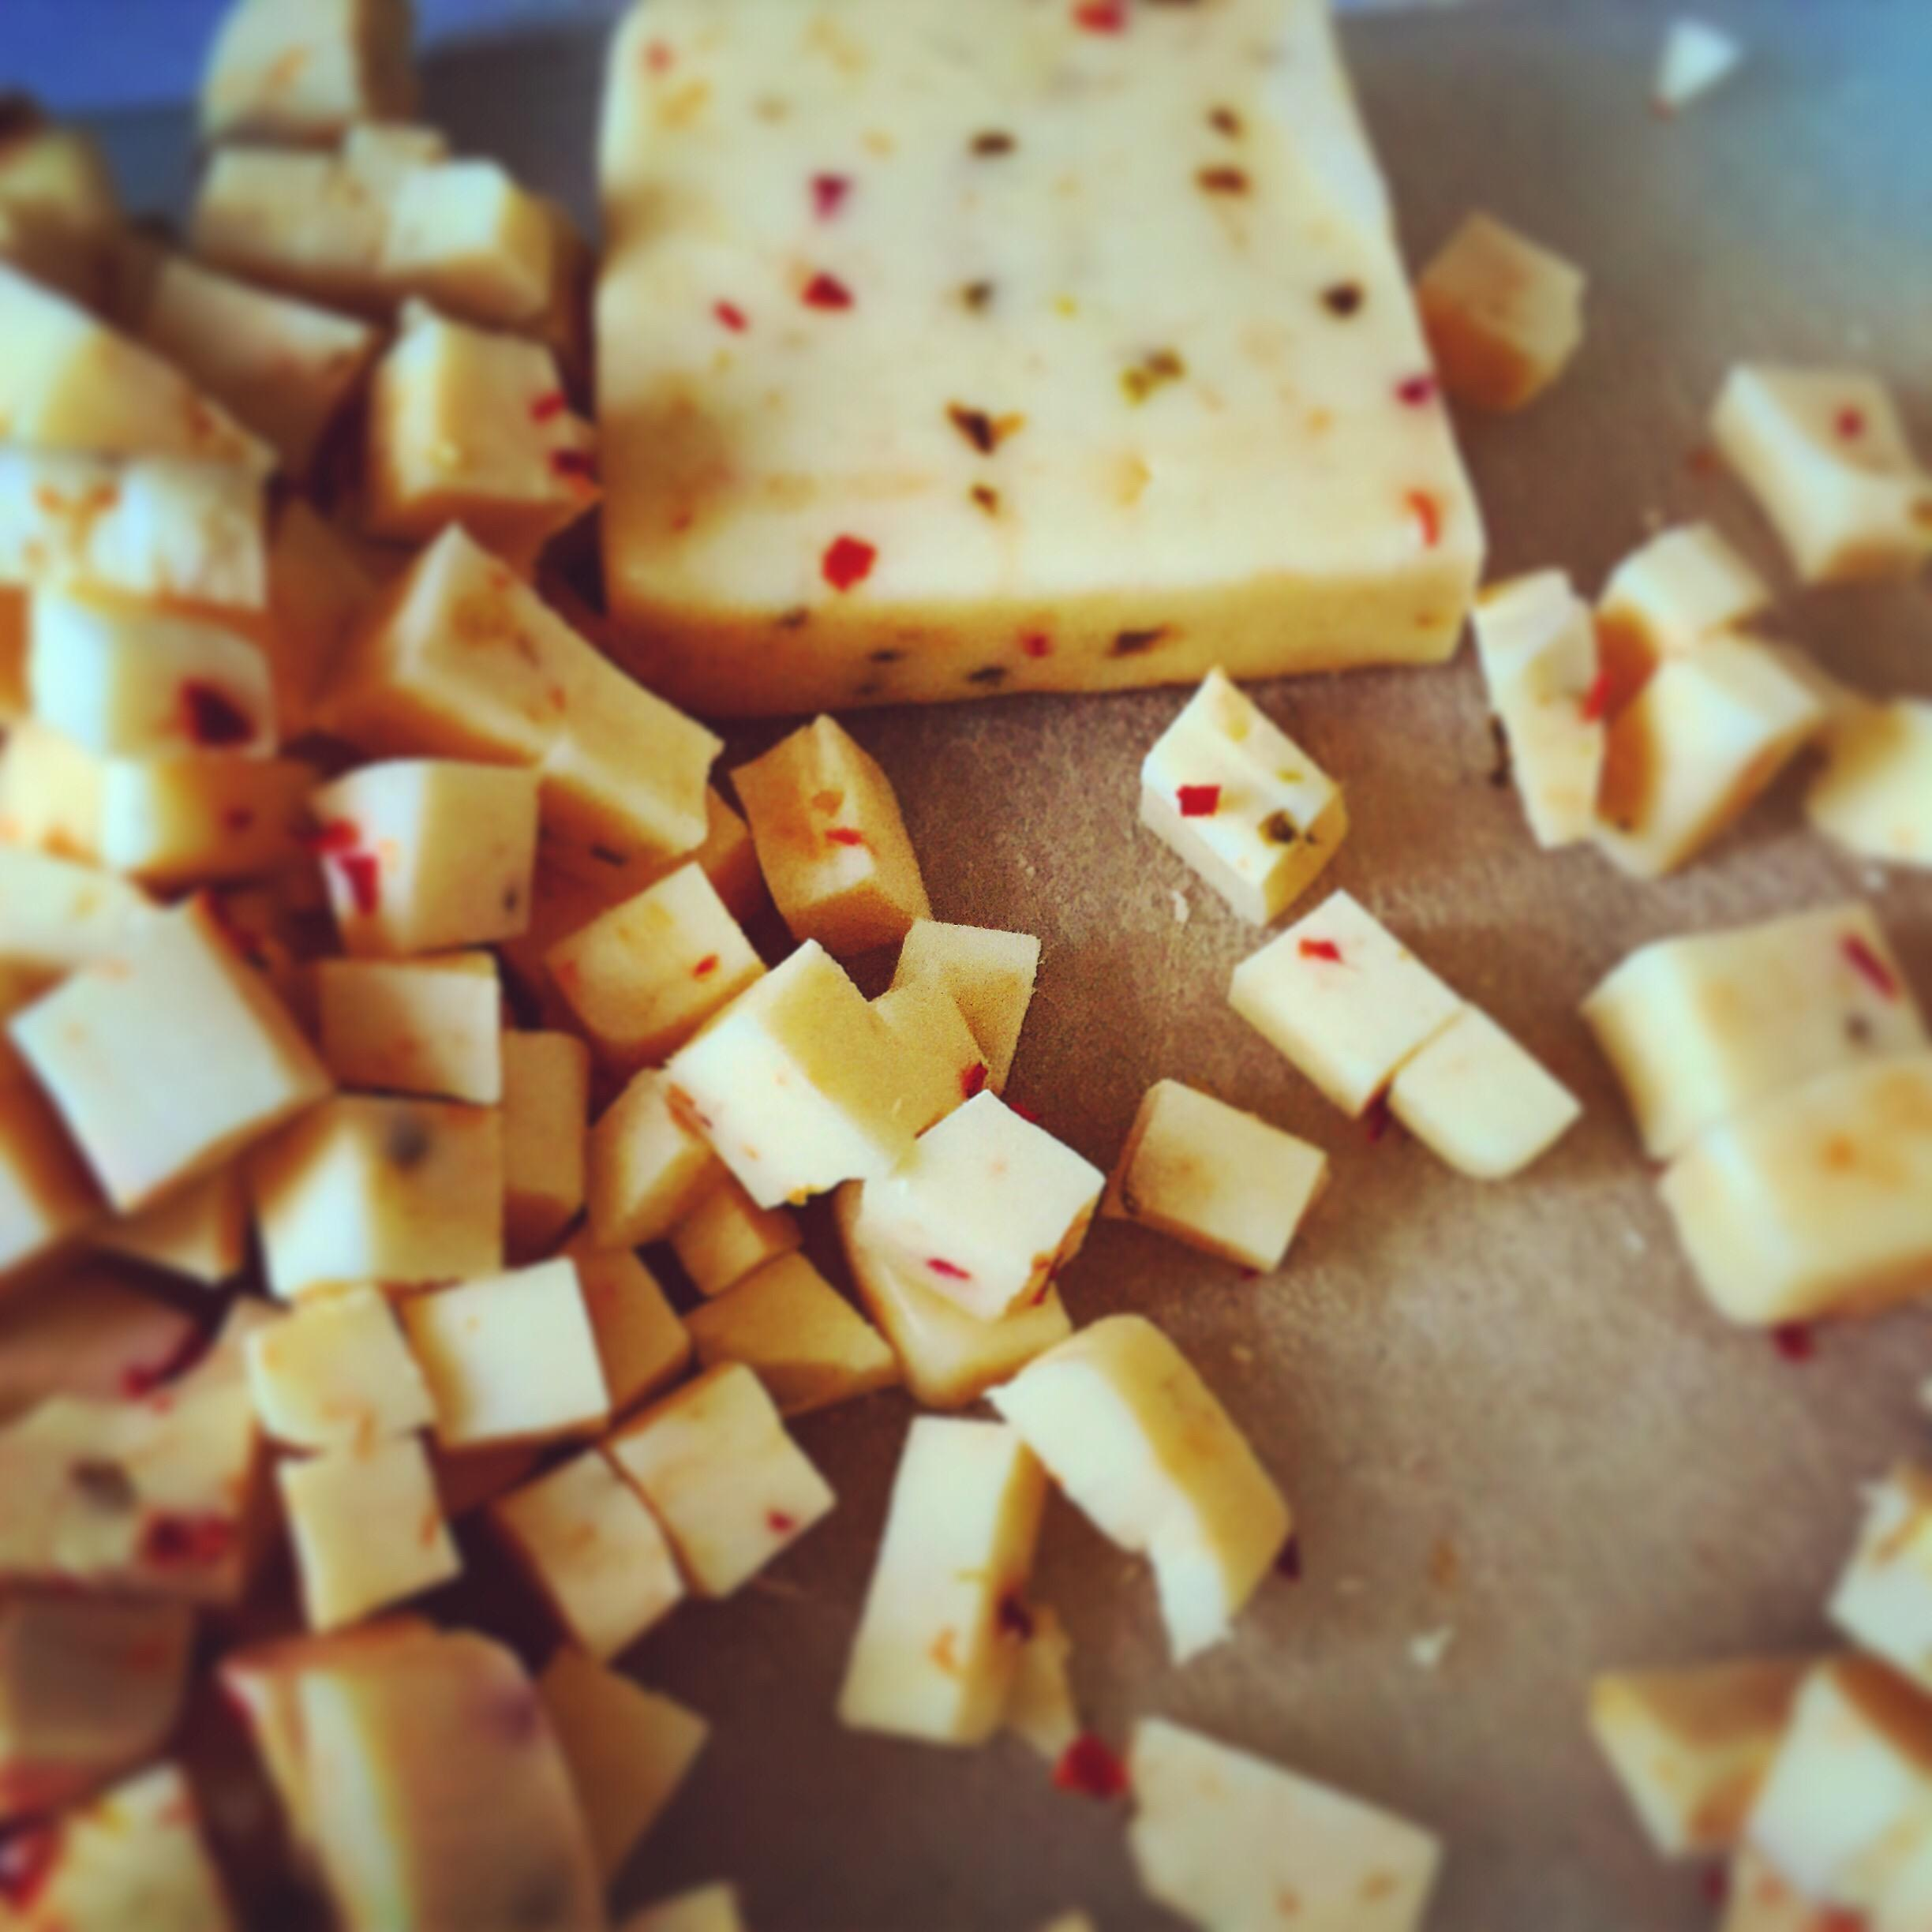 Pacifica Jack Cheese Contest